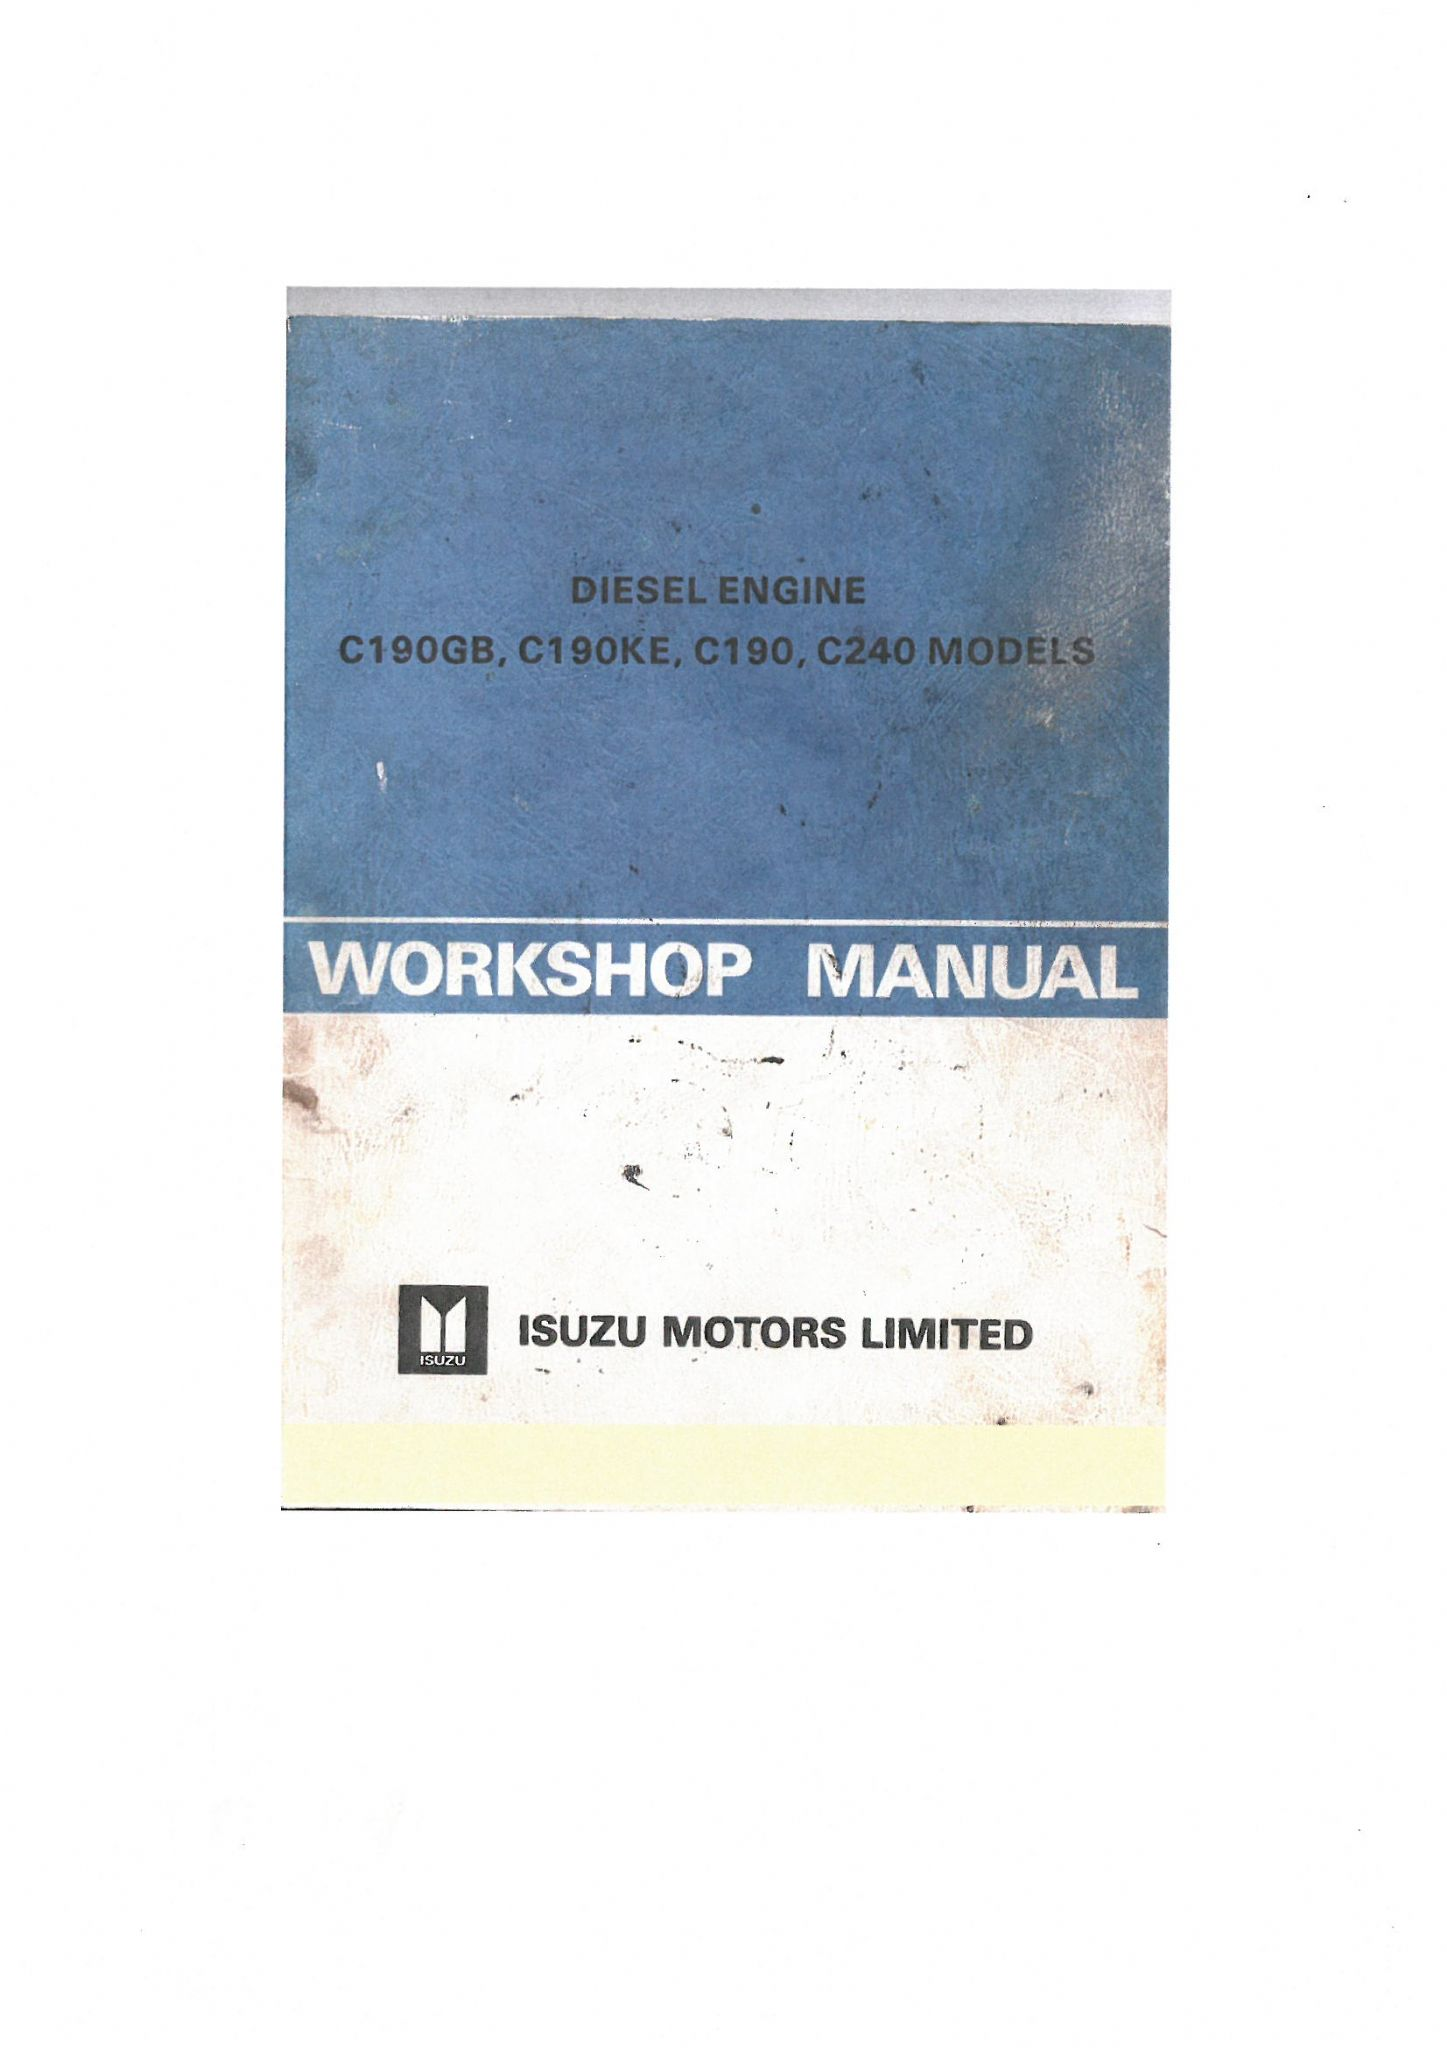 isuzu diesel engine c190gb c190ke c190 c240 workshop service manual rh agrimanuals com Isuzu Engine Parts Catalog Isuzu Repair Manual Online